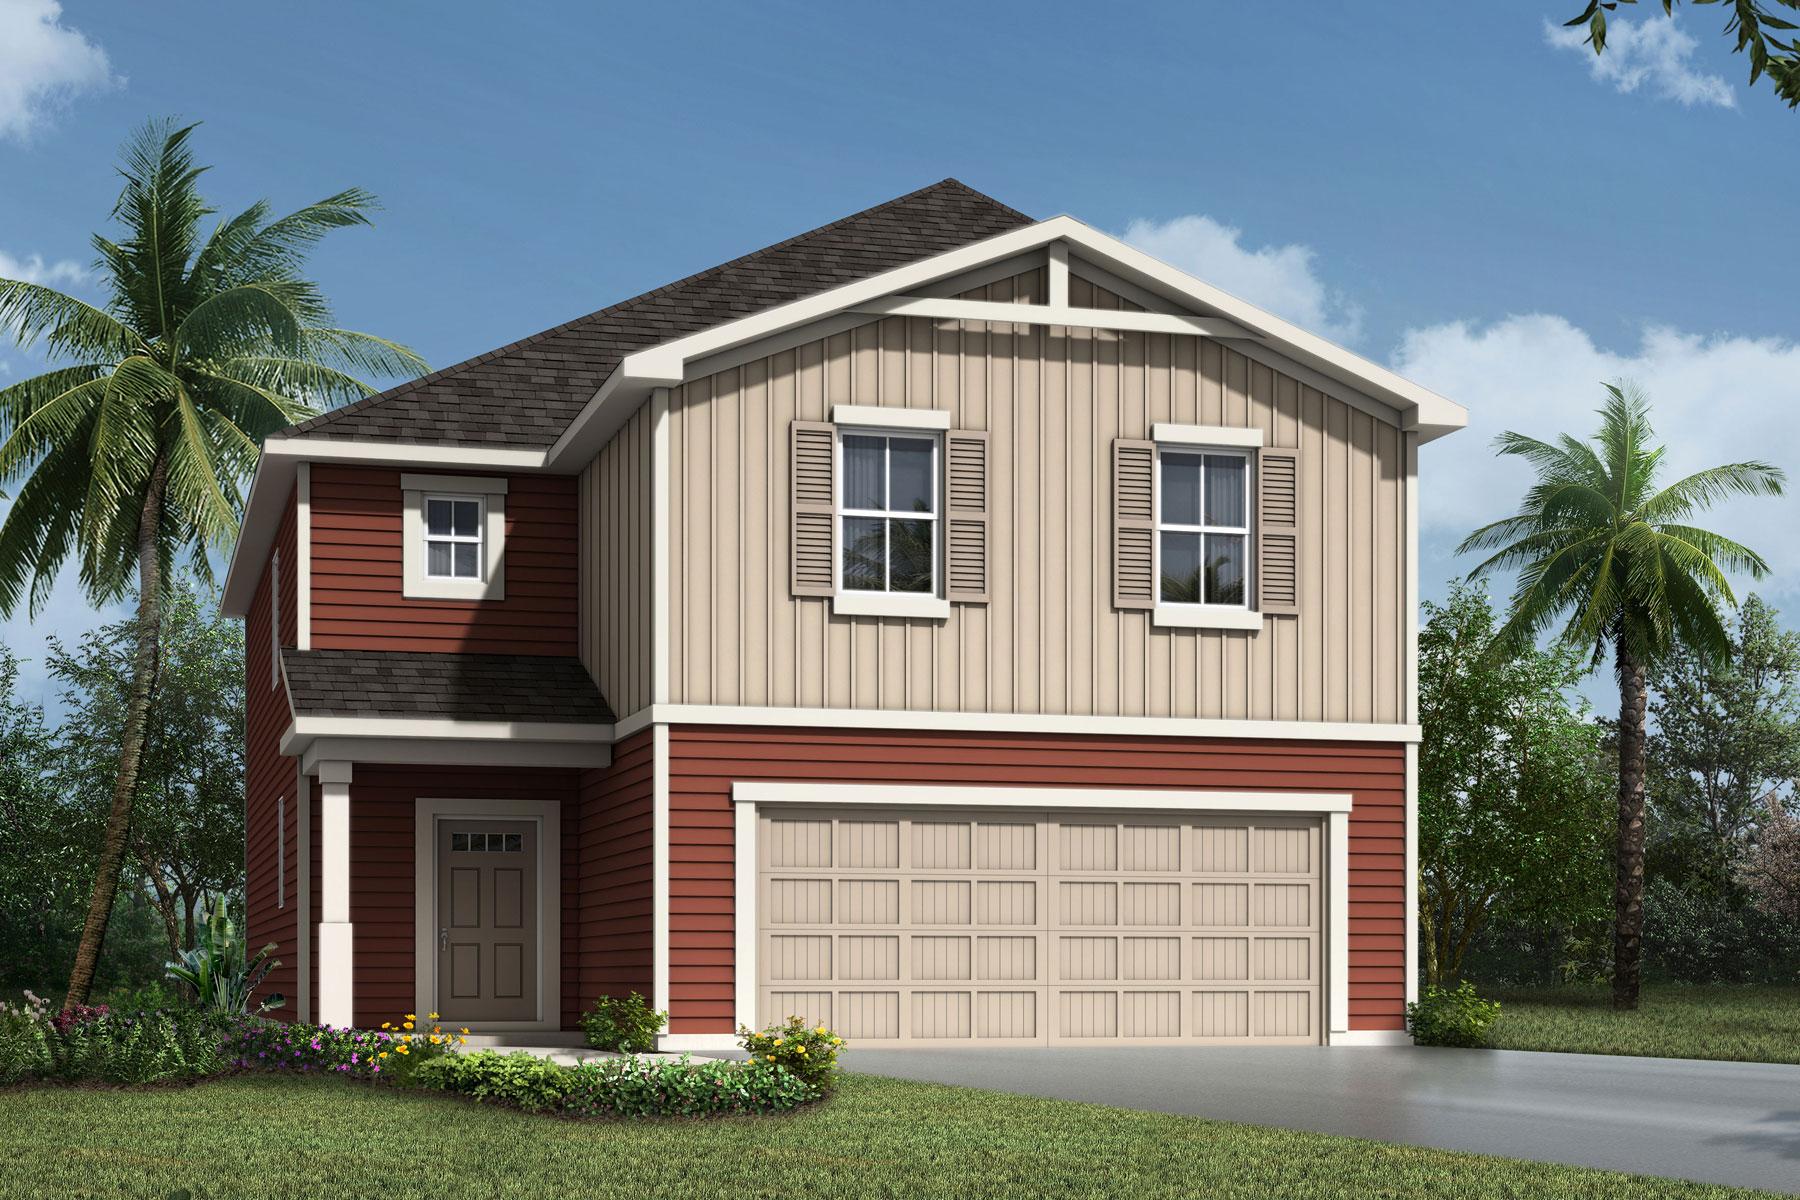 Sebastian Plan Elevation Front at RiverTown - Haven in St. Johns Florida by Mattamy Homes